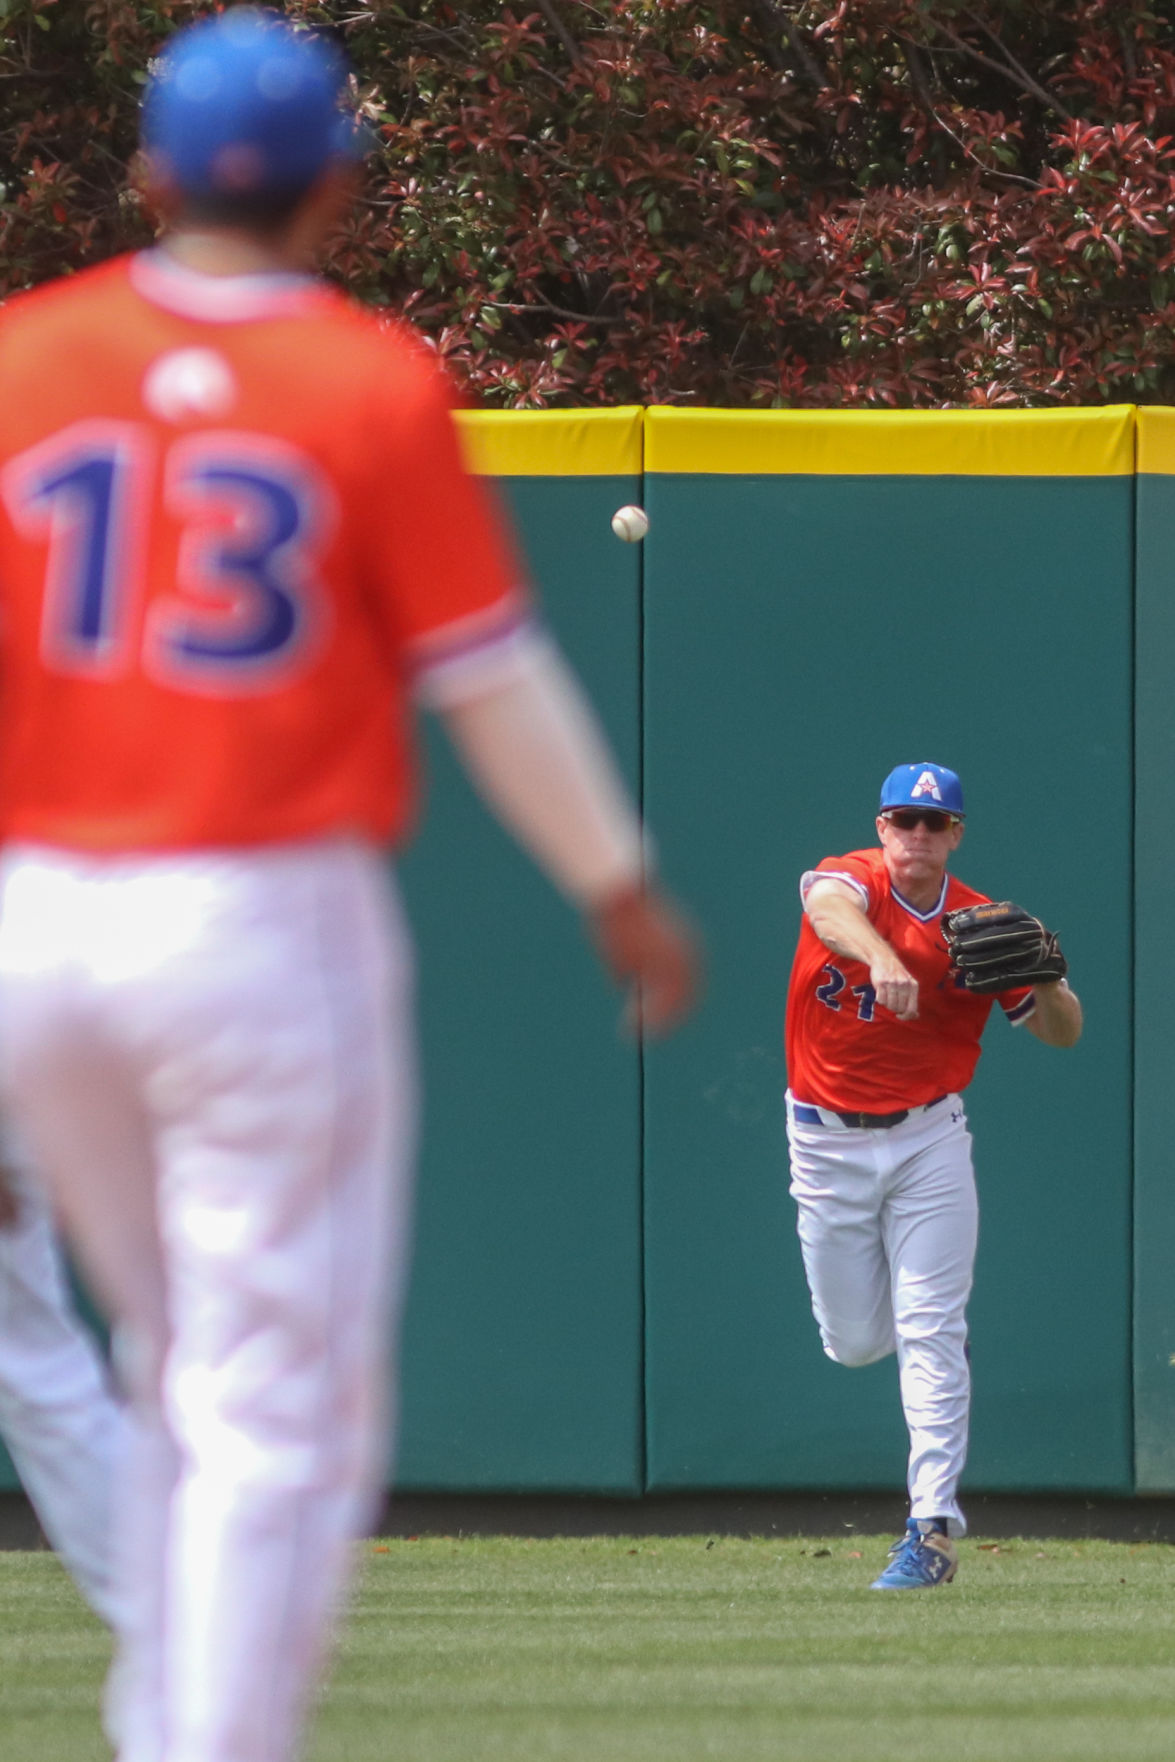 UTA baseball completes sweep against University of South Alabama